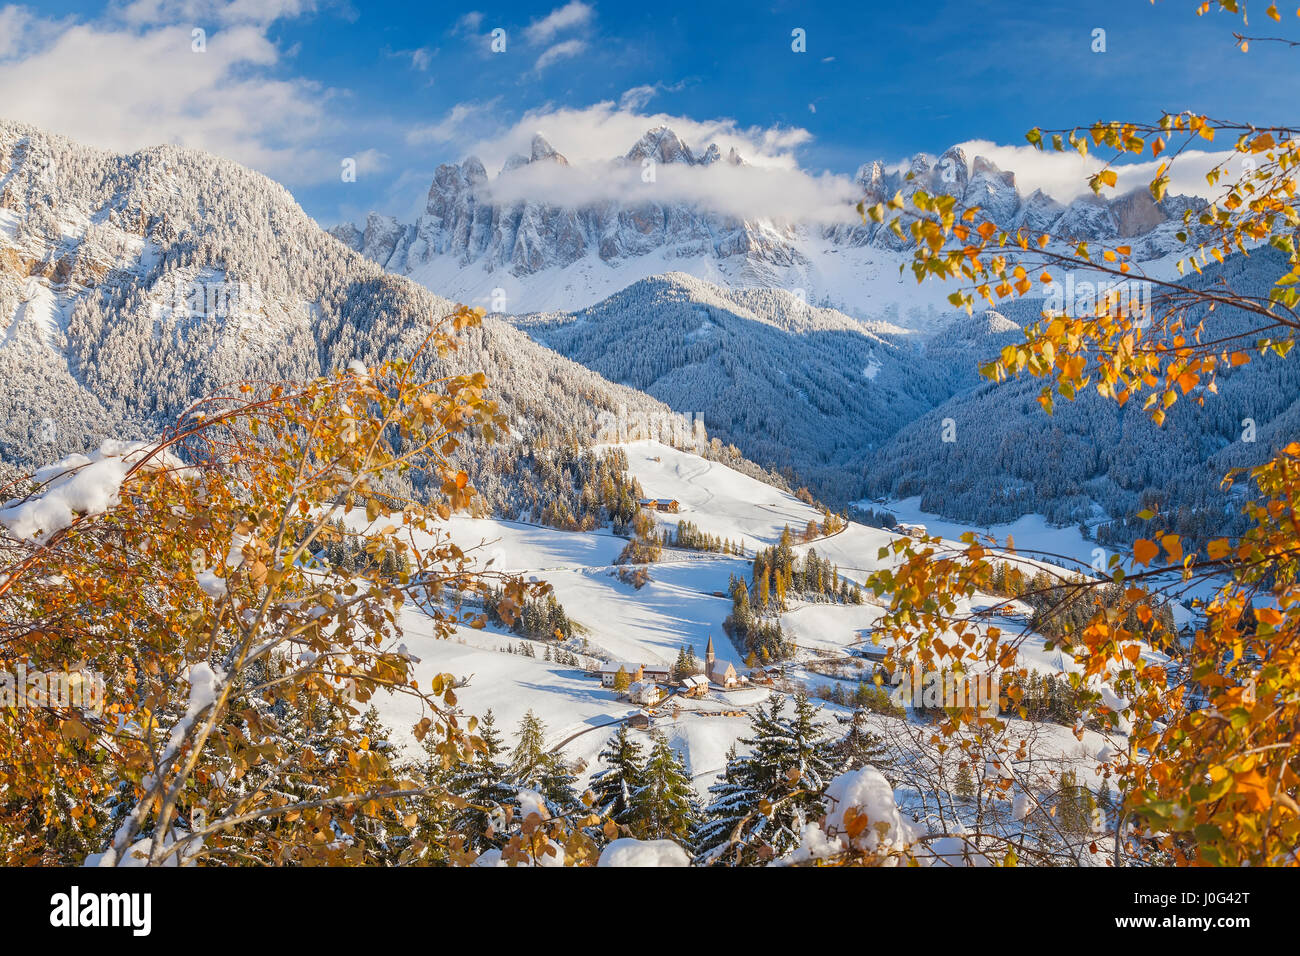 Winter snow at St. Magdalena village in the Val di Funes, Dolomites mountains, Trentino-Alto Adige, South Tirol, - Stock Image